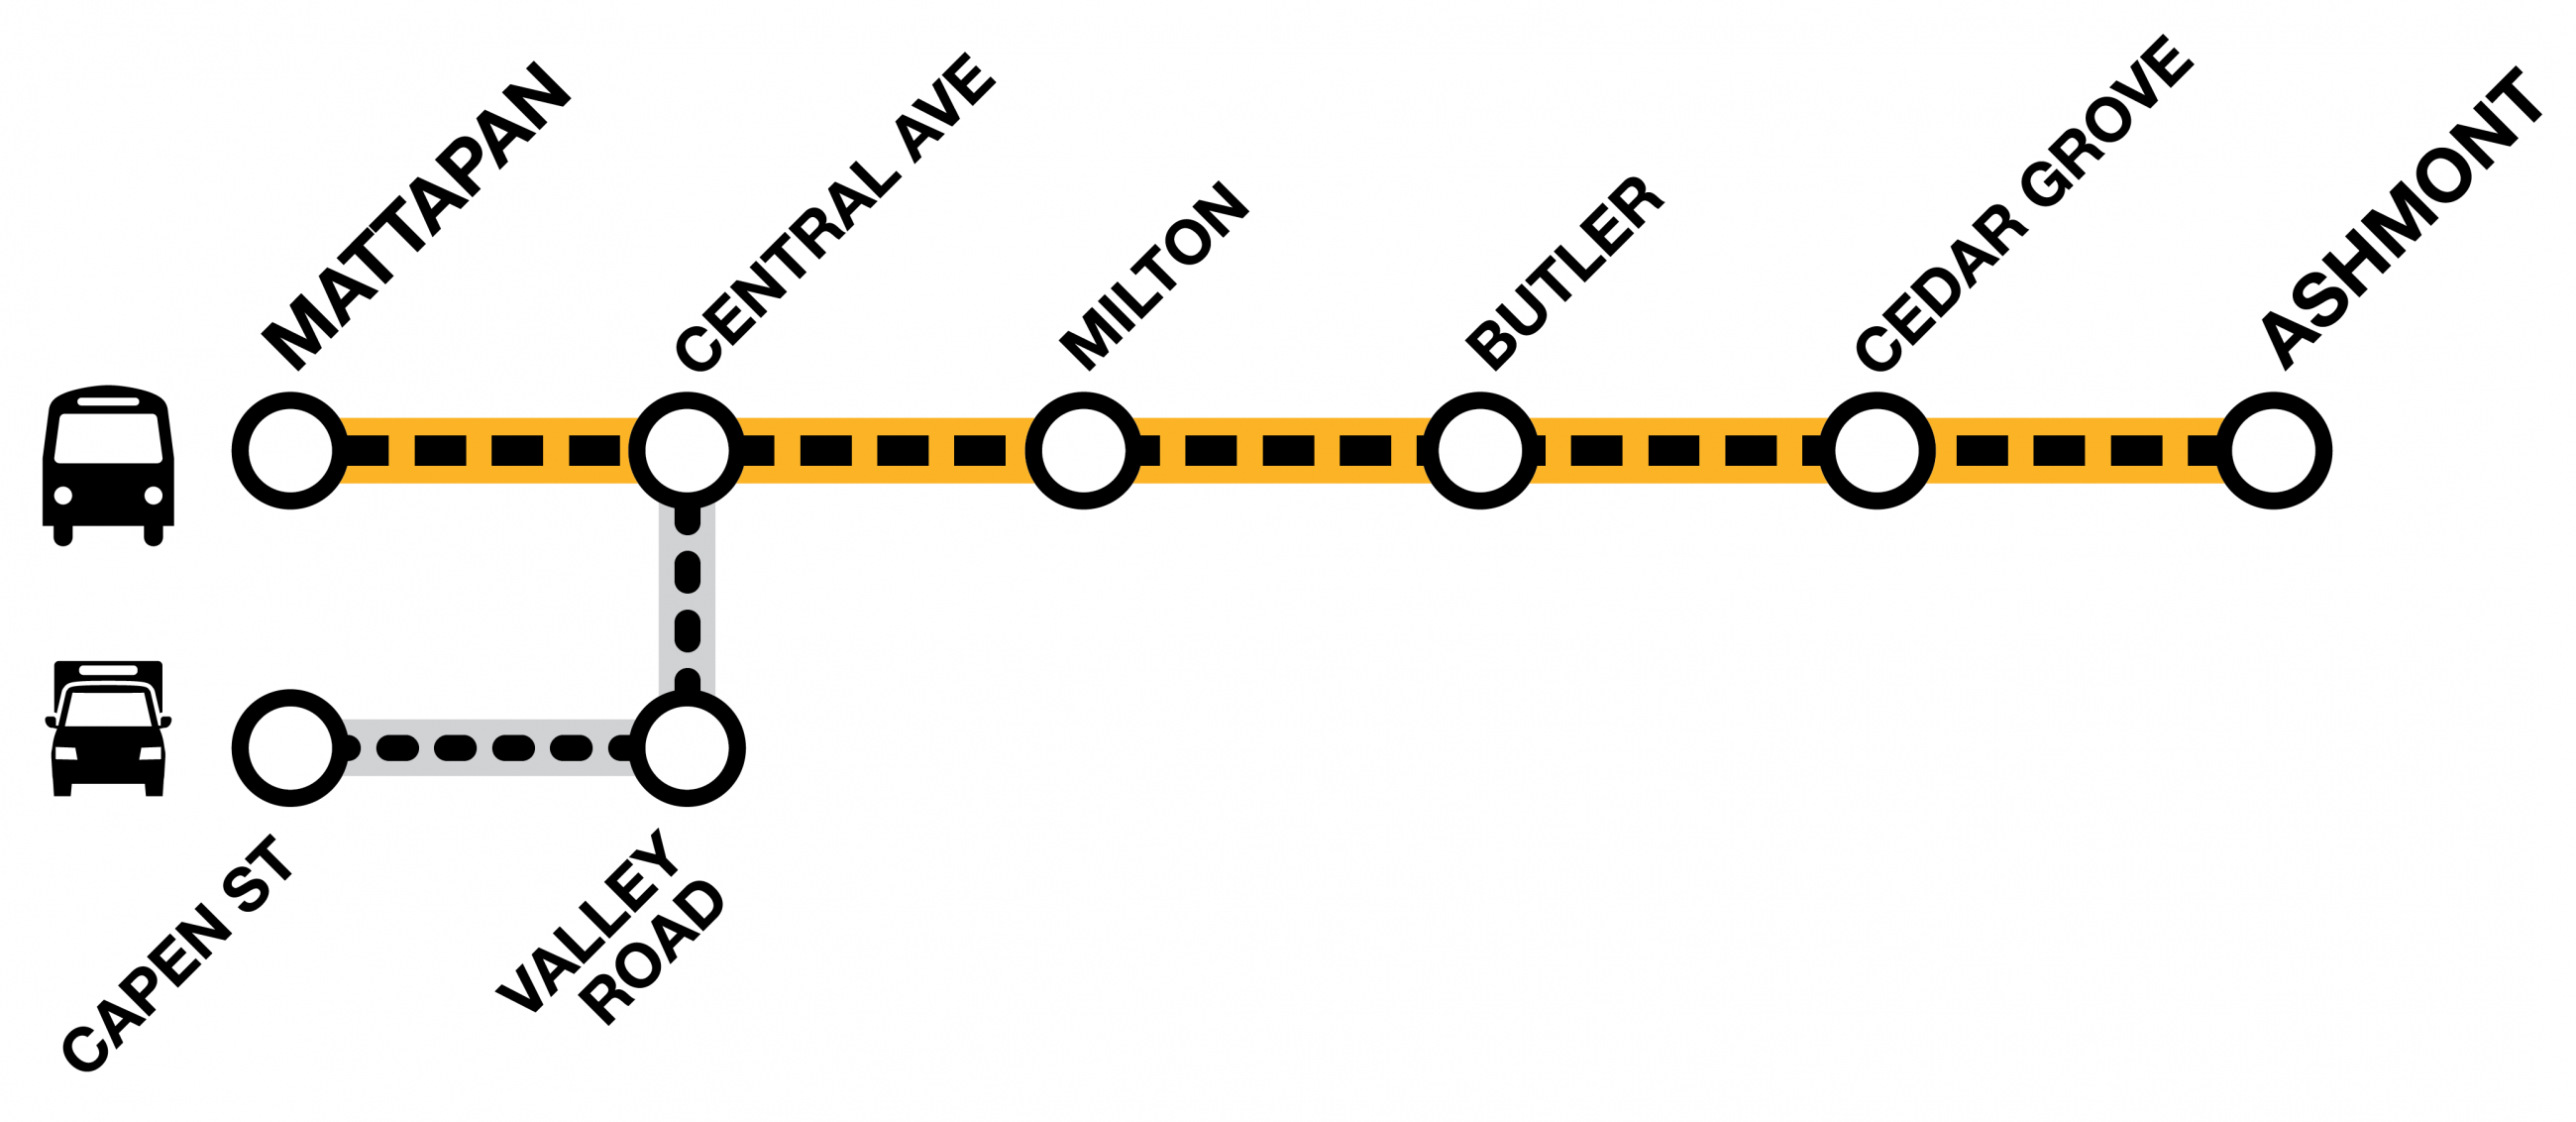 Line graphic showing Mattapan Trolley service replaced with van shuttles at Capen St and Valley Rd, and by bus shuttles at all other stops.